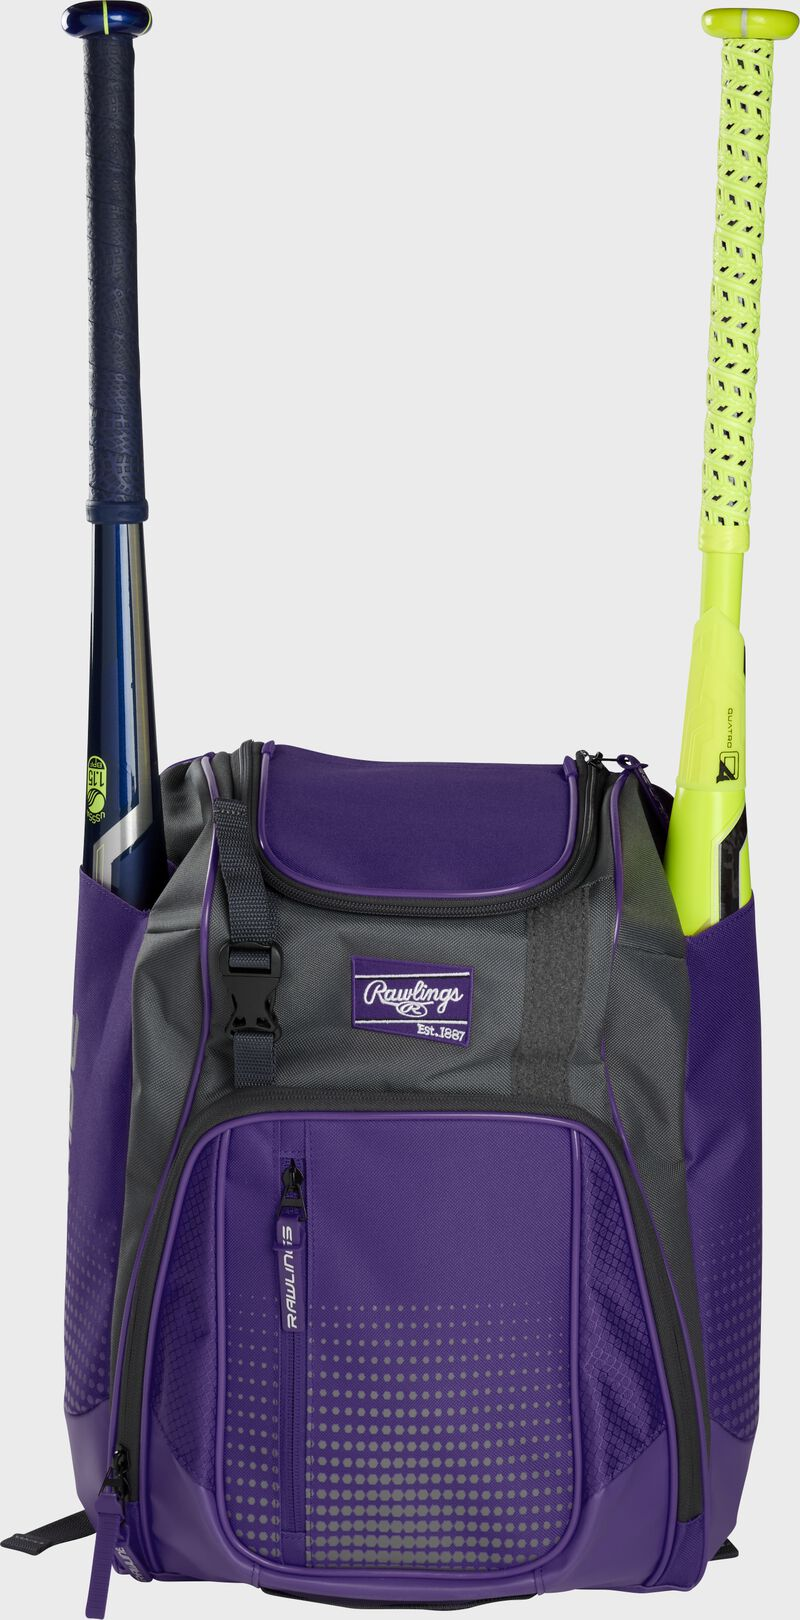 Front of a purple Rawlings Franchise baseball backpack with two bats in the side sleeves - SKU: FRANBP-PU